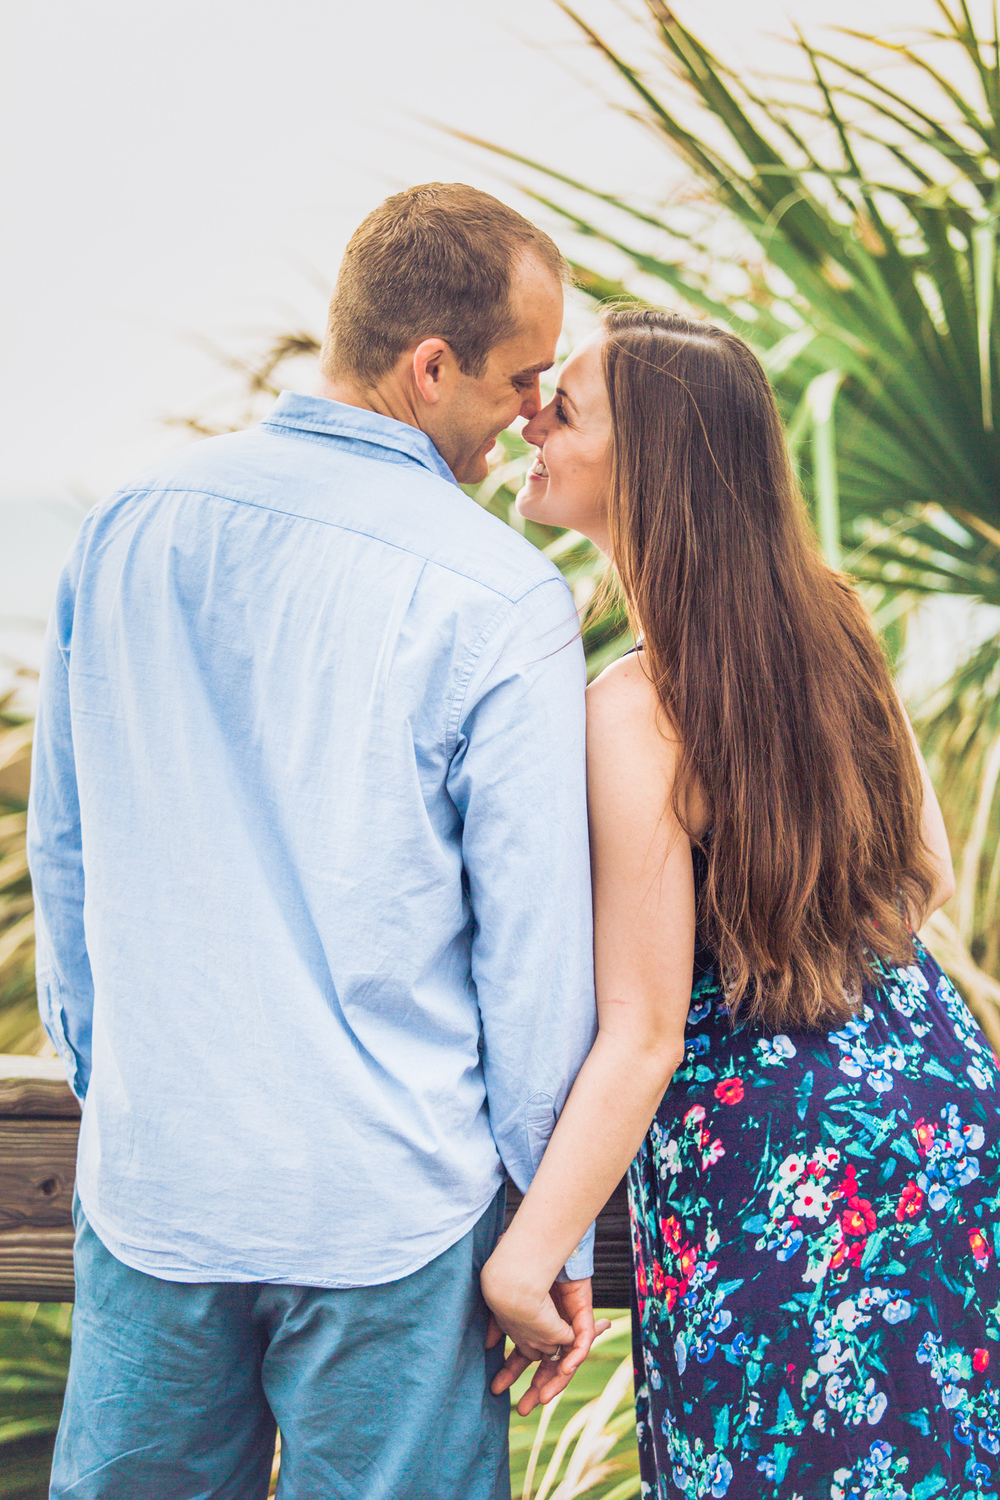 Tribe Archipelago LXC Cocoa Beach Engagement photography #LooksLikeFilm Space Coast Brevard photographer 55.jpg